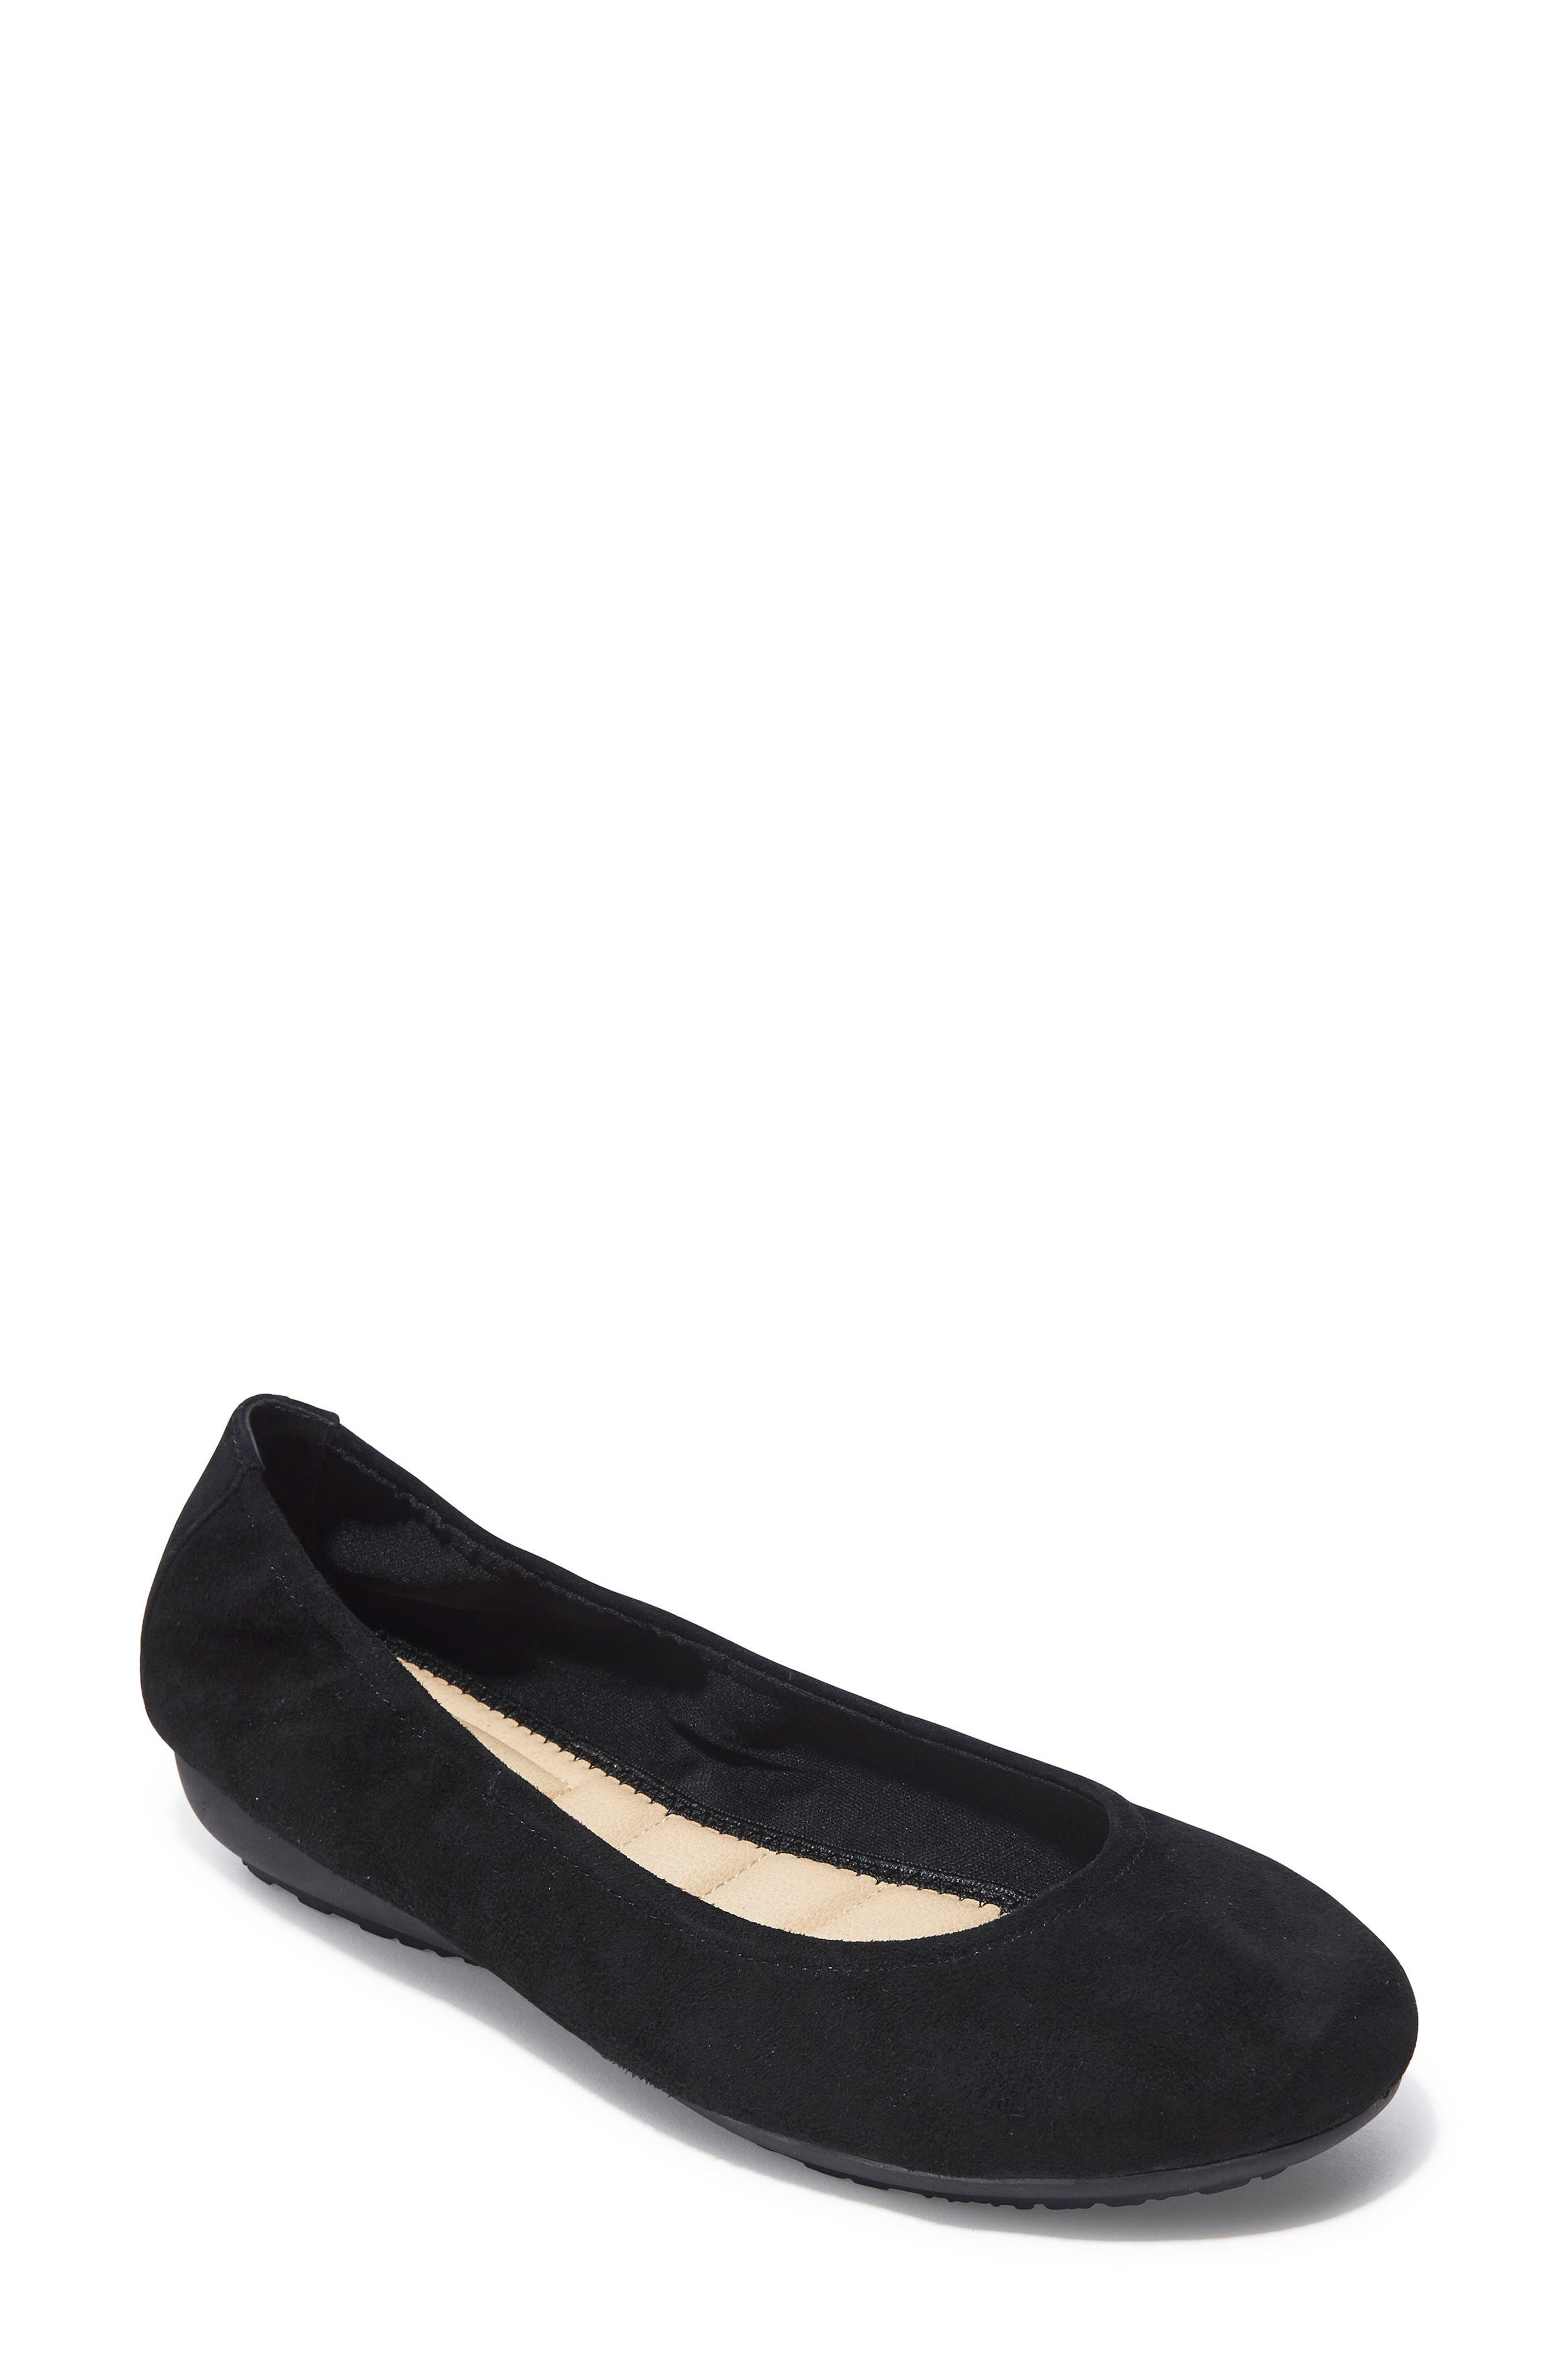 Janell Sliver Wedge Flat,                             Main thumbnail 1, color,                             014